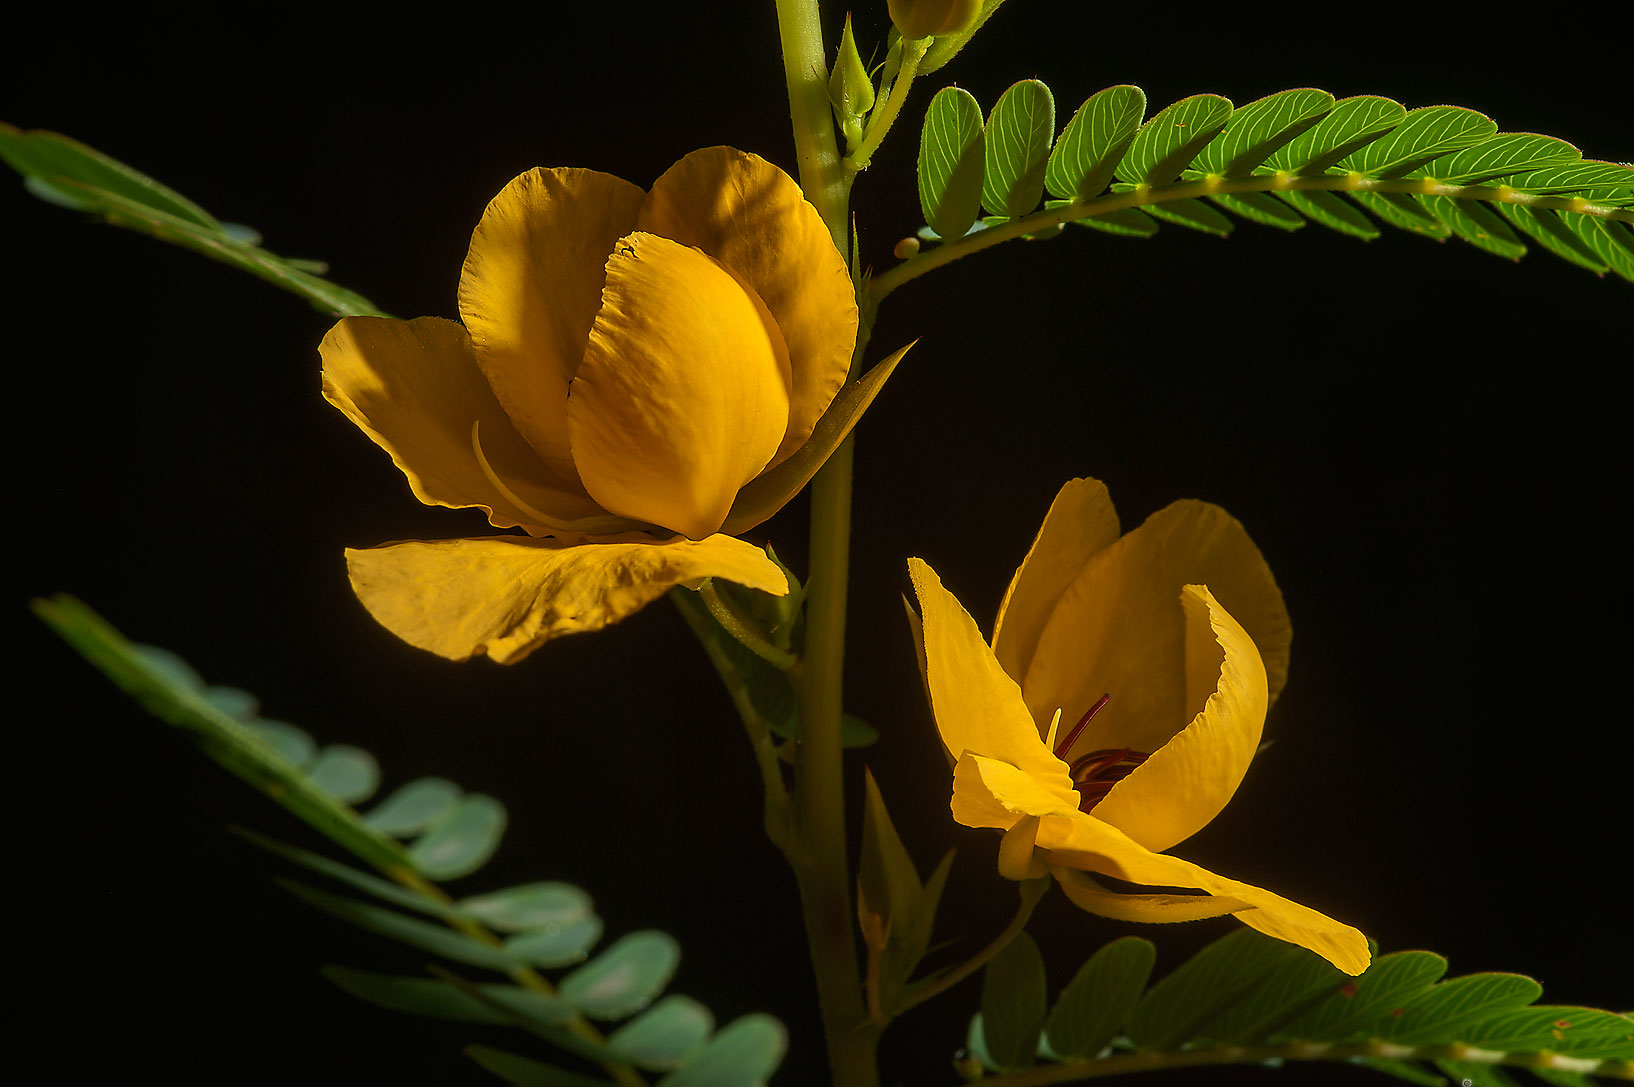 Partridge pea (Cassia fasciculata) in Lick Creek Park. College Station, Texas